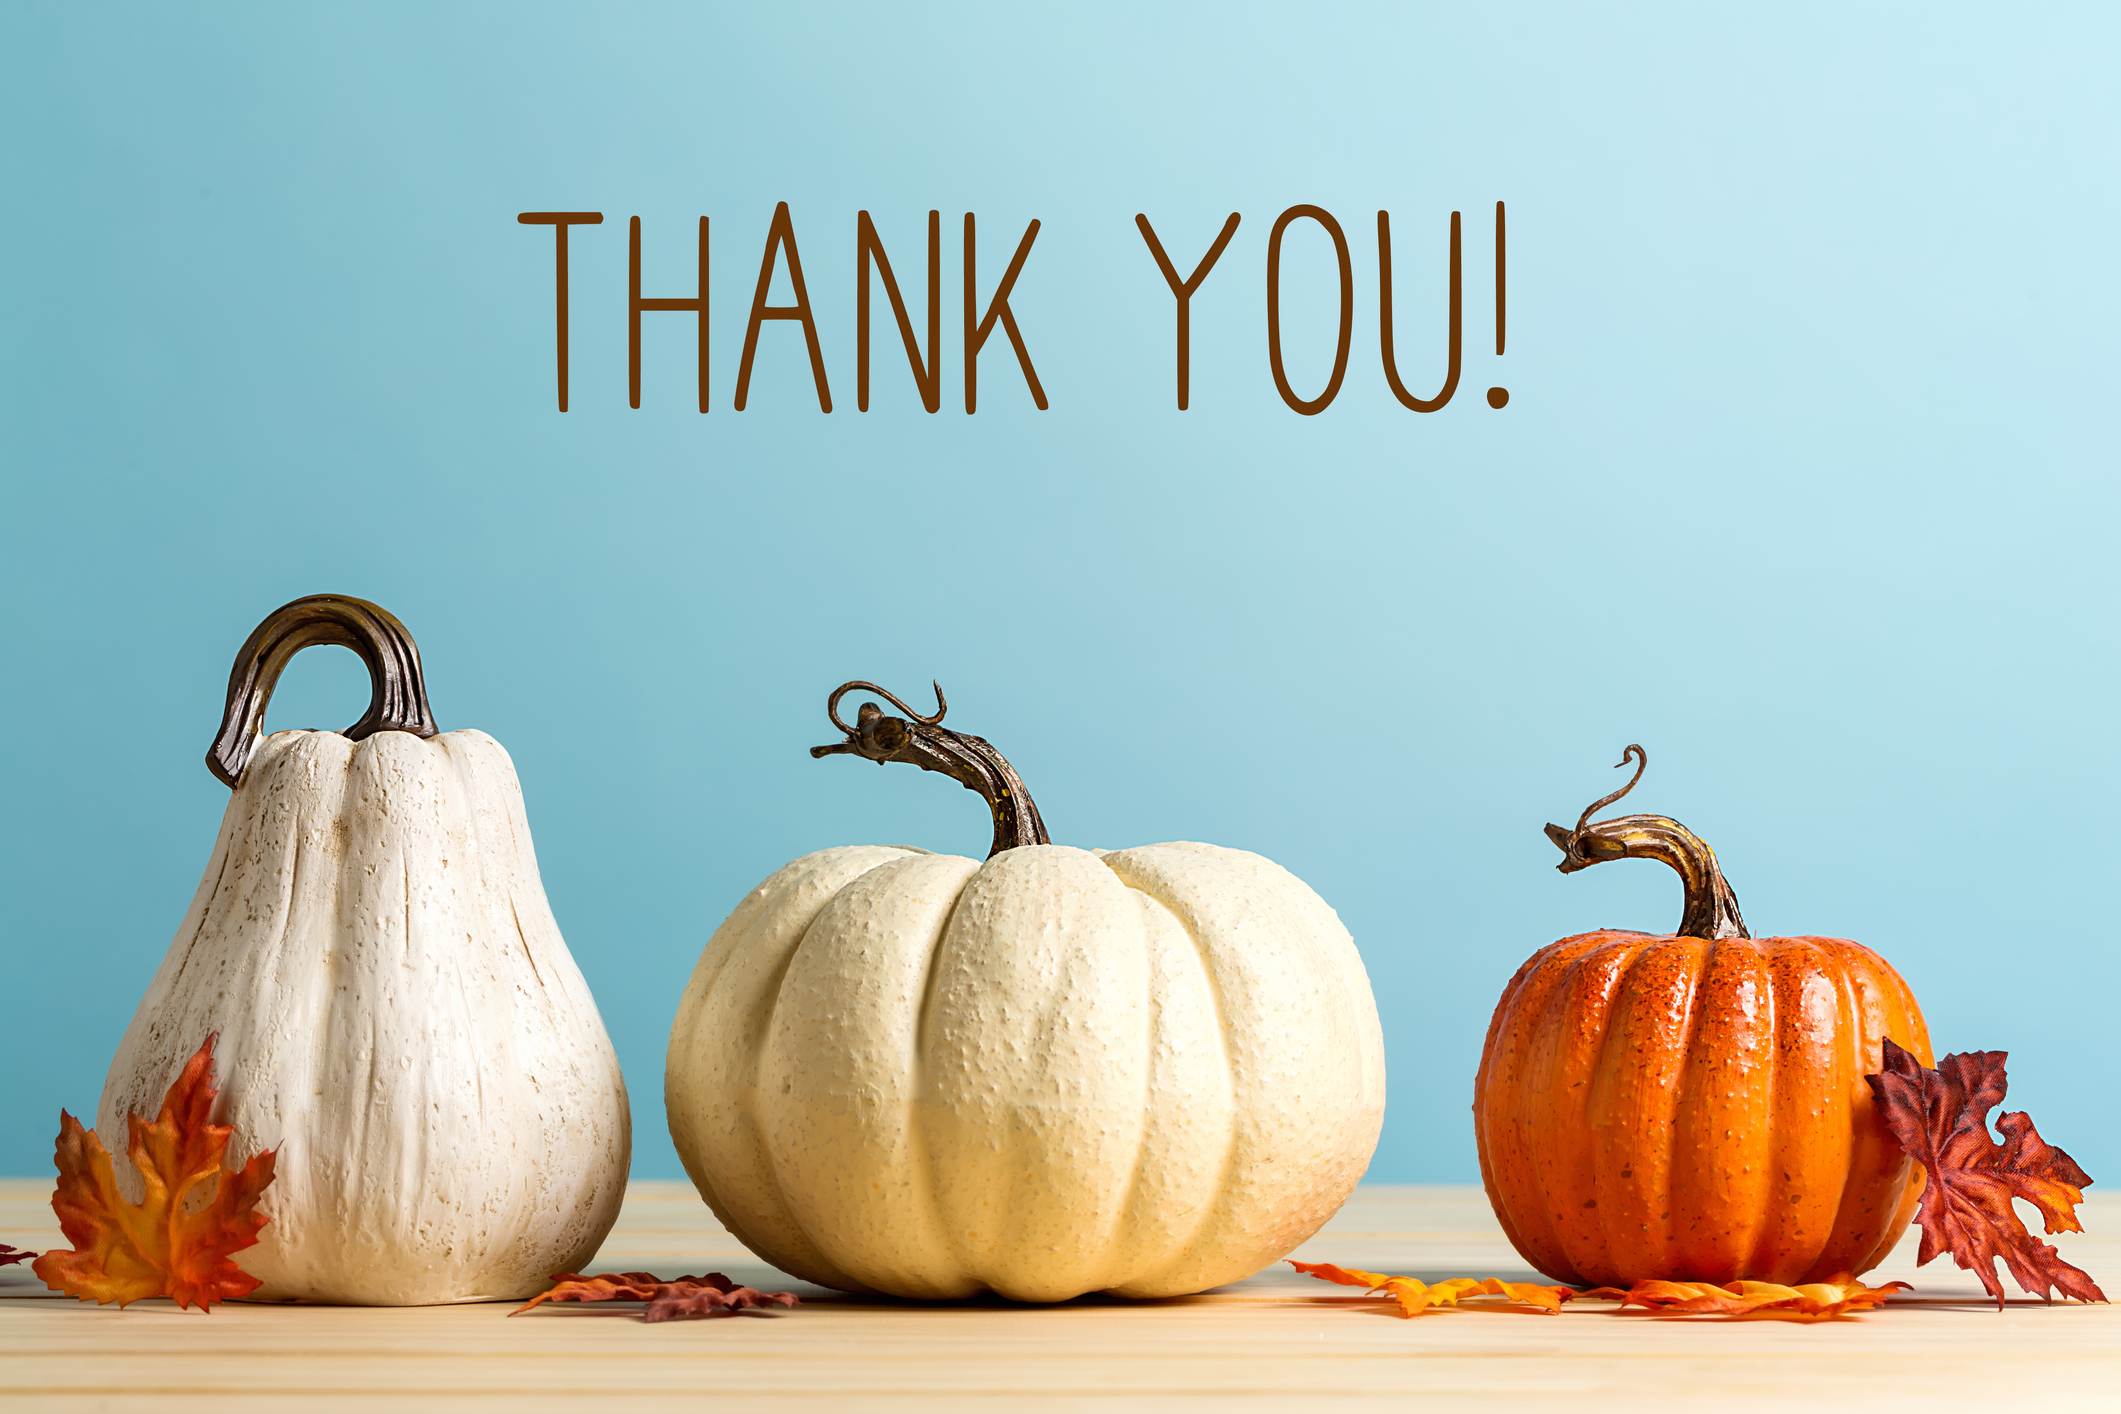 Pumpkins and gourds with a thank you message.